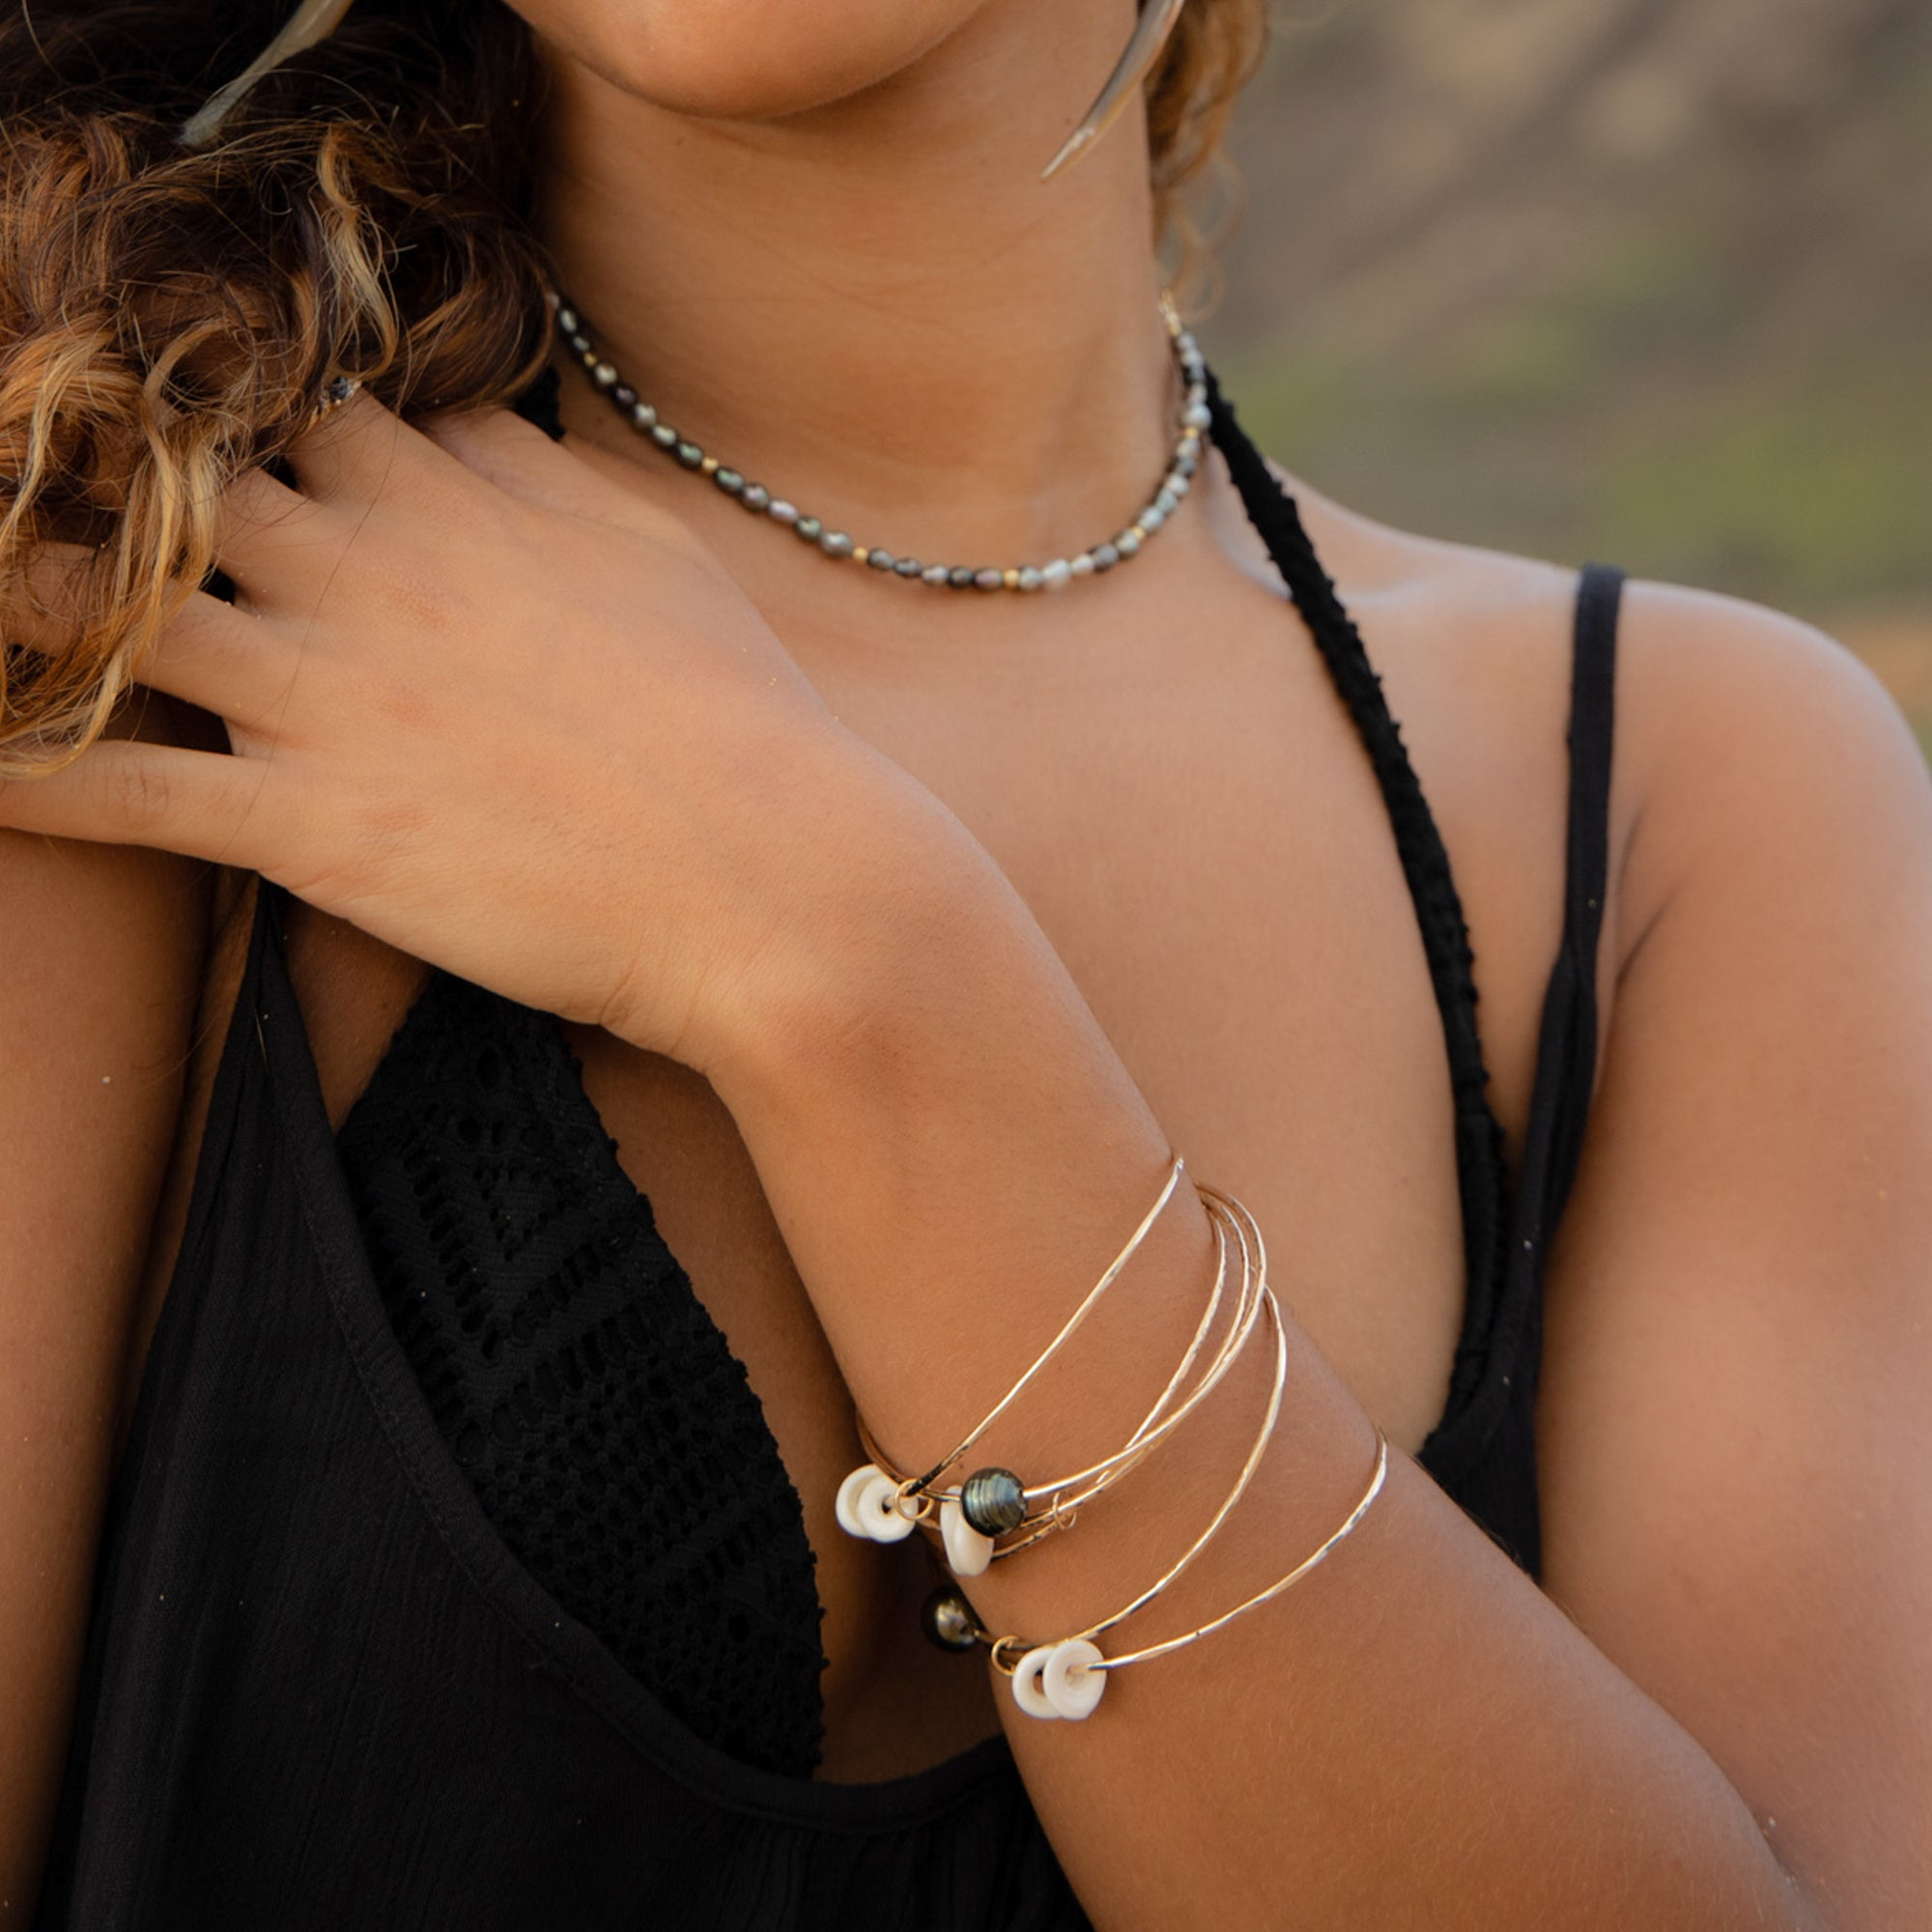 Hawaiki Bangle Set - 21 Degrees North Designs